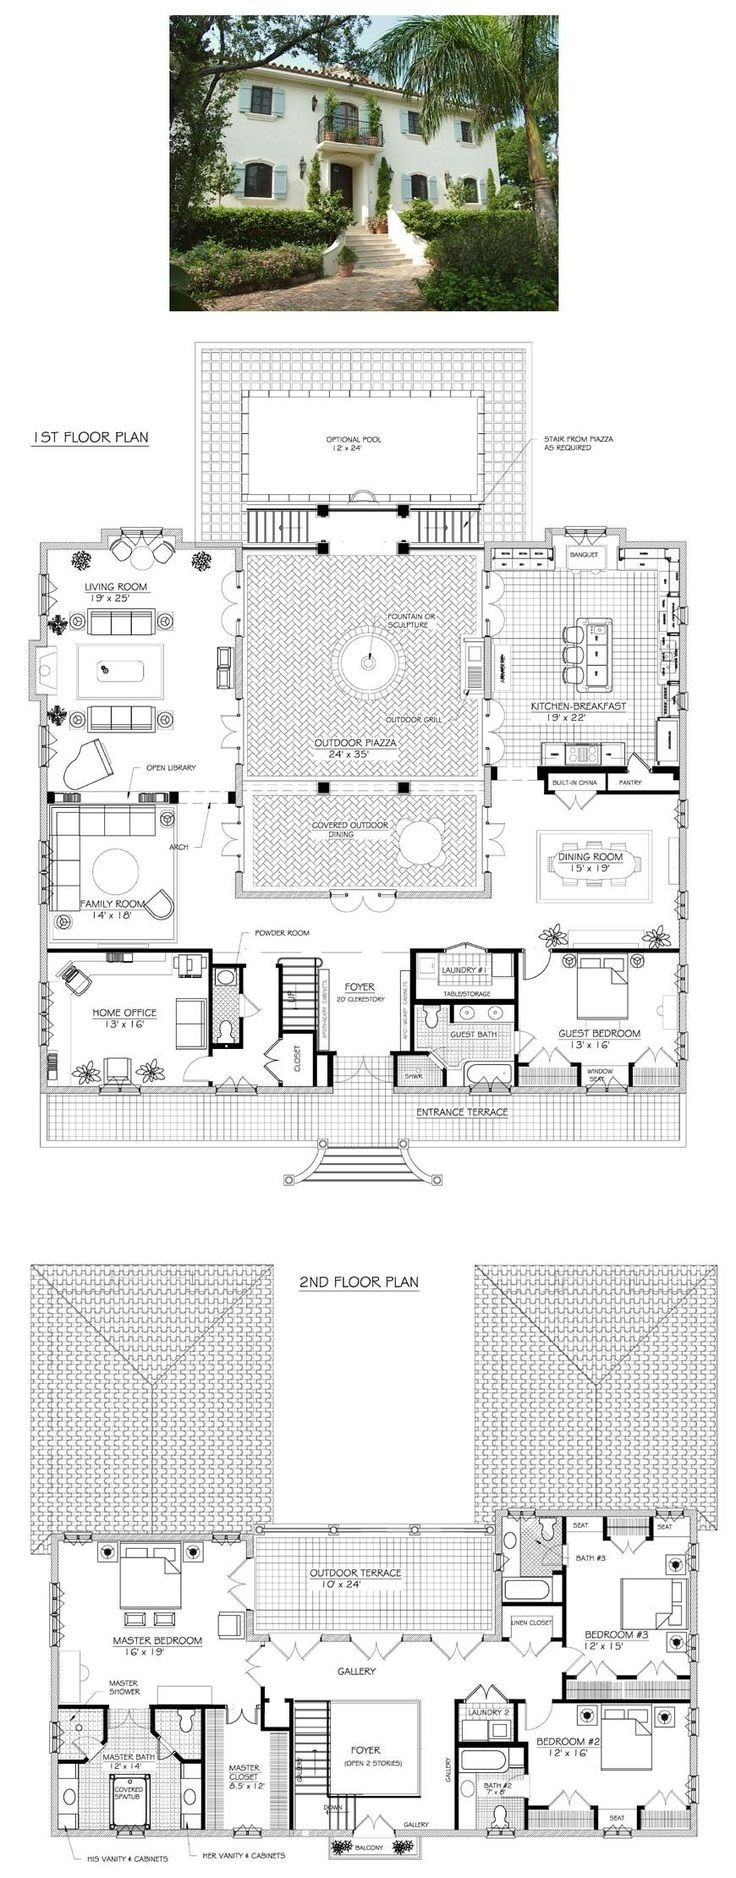 Gorgeous French villa plan - I fell in love with this plan. It's my new dream house, even though it's huge. I have a board that shows what I would do with it. https://www.pinterest.com/imtoomisty/la-vie-de-la-villa/ The plan with my changes is pinned there as well.  Unfortunately the company has changed their website, and this plan is no longer available. 5616sf (including terrace and courtyard)